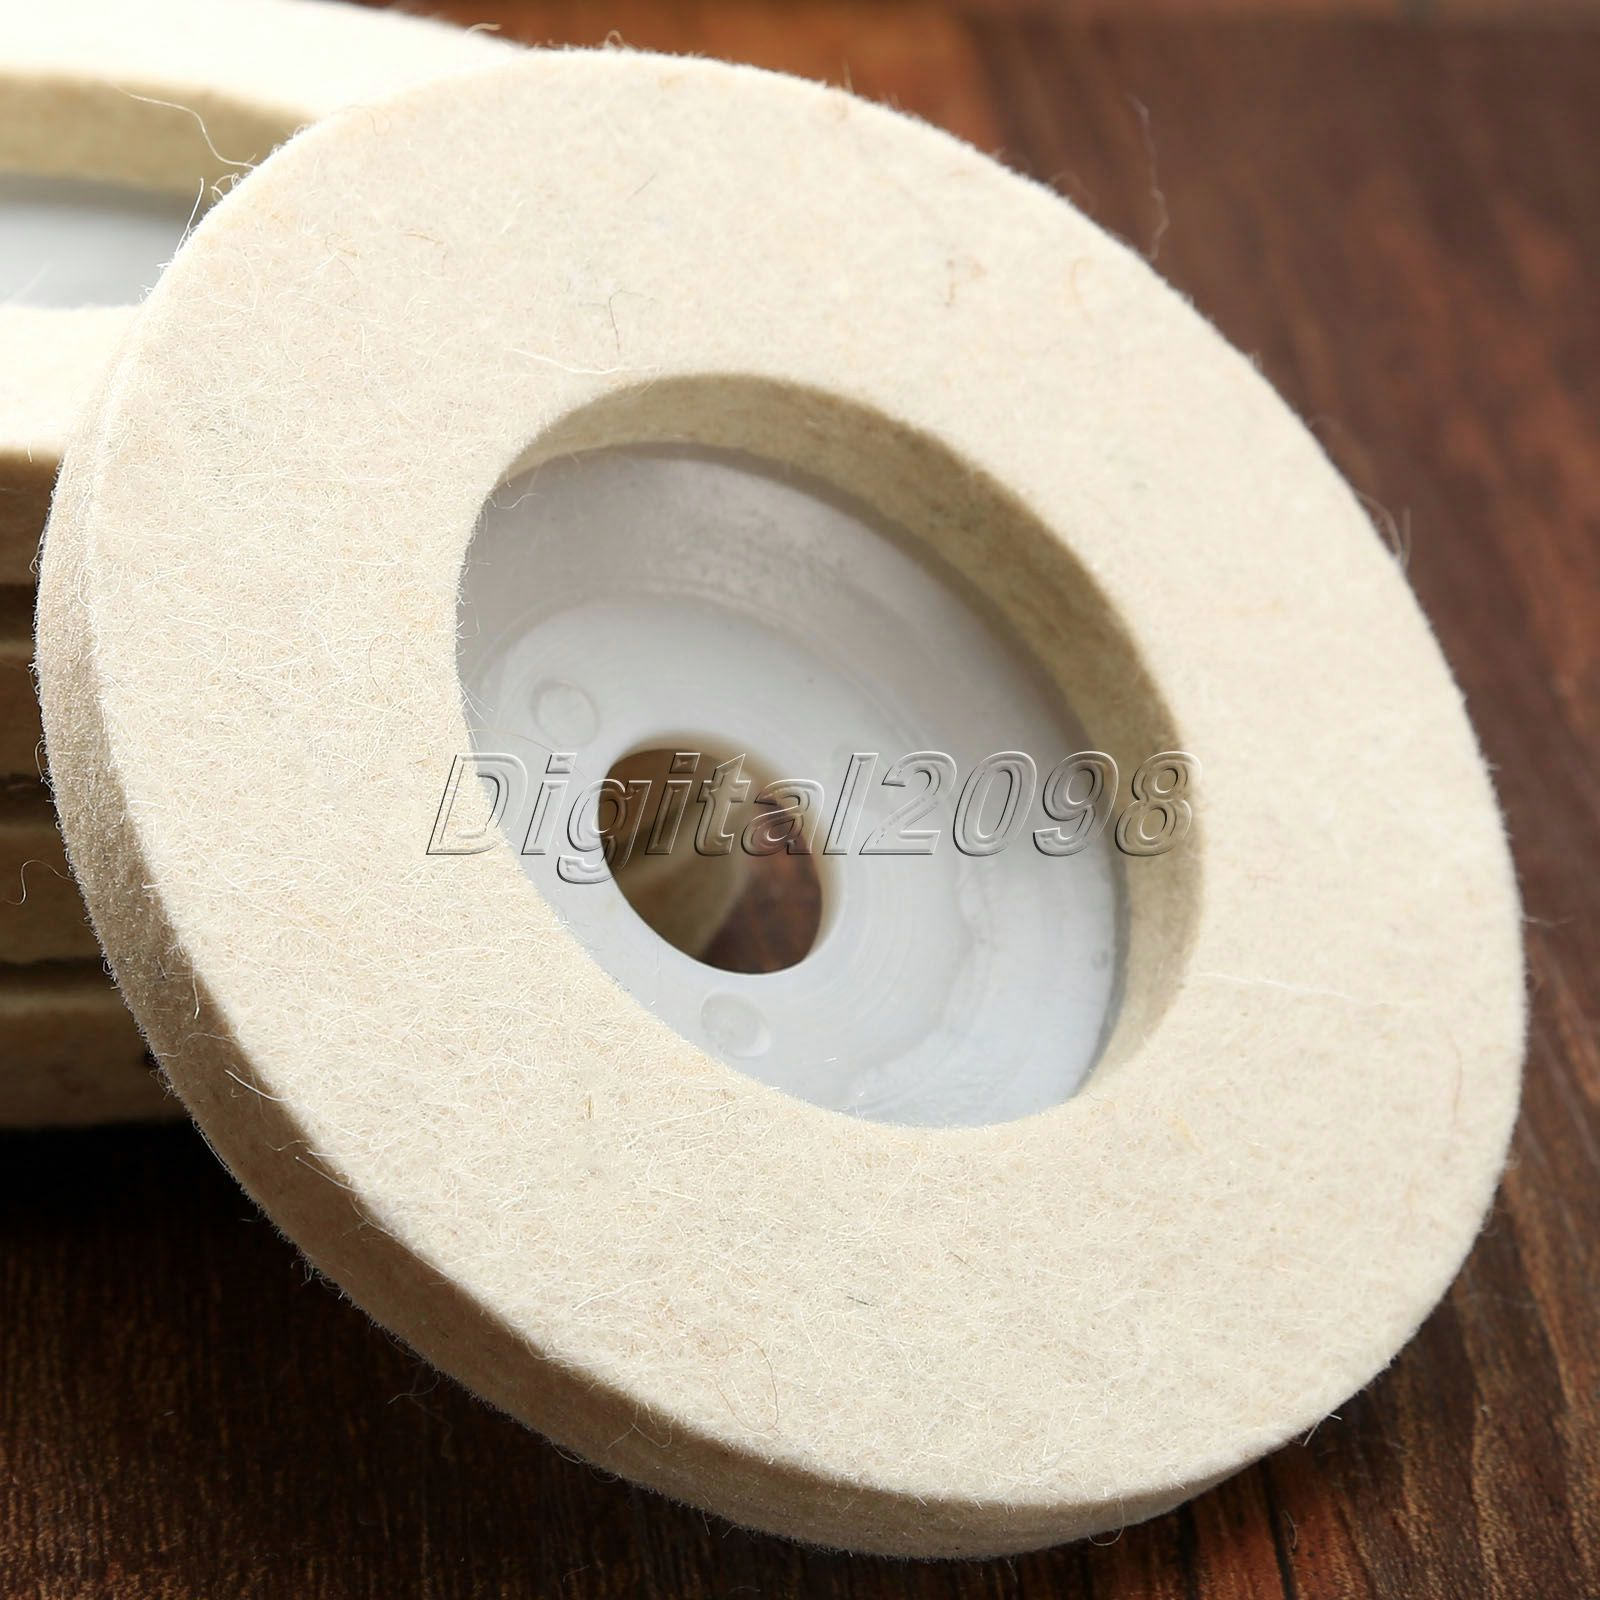 4 inch 100*10mm*16mm Round Polishing Wheel Wool FELT Buffing Polishers Pad NEW Pearl Cloth Wheel Buffing Wheels Abrasive Tool